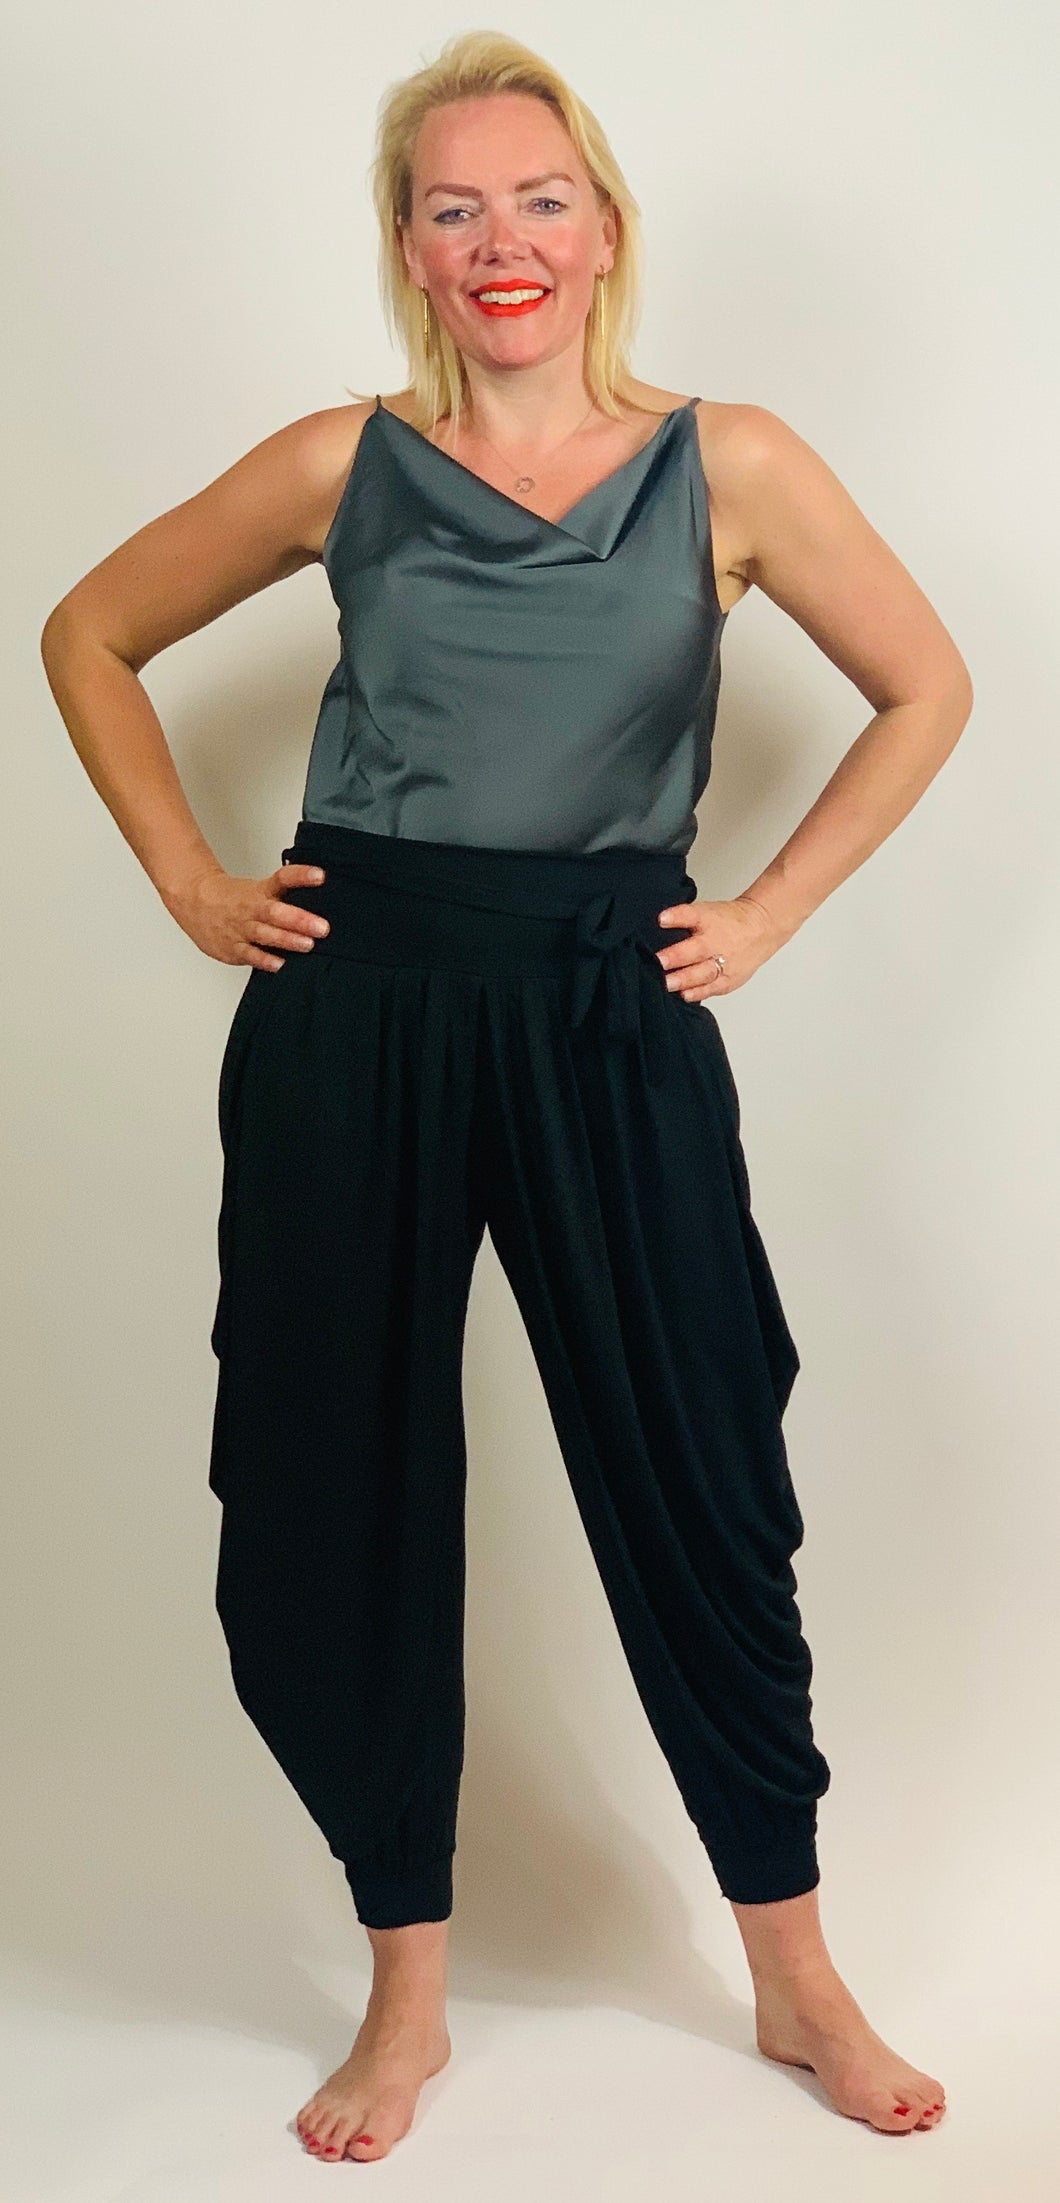 Cowl Neck Satin Vest Top - chichappensboutique